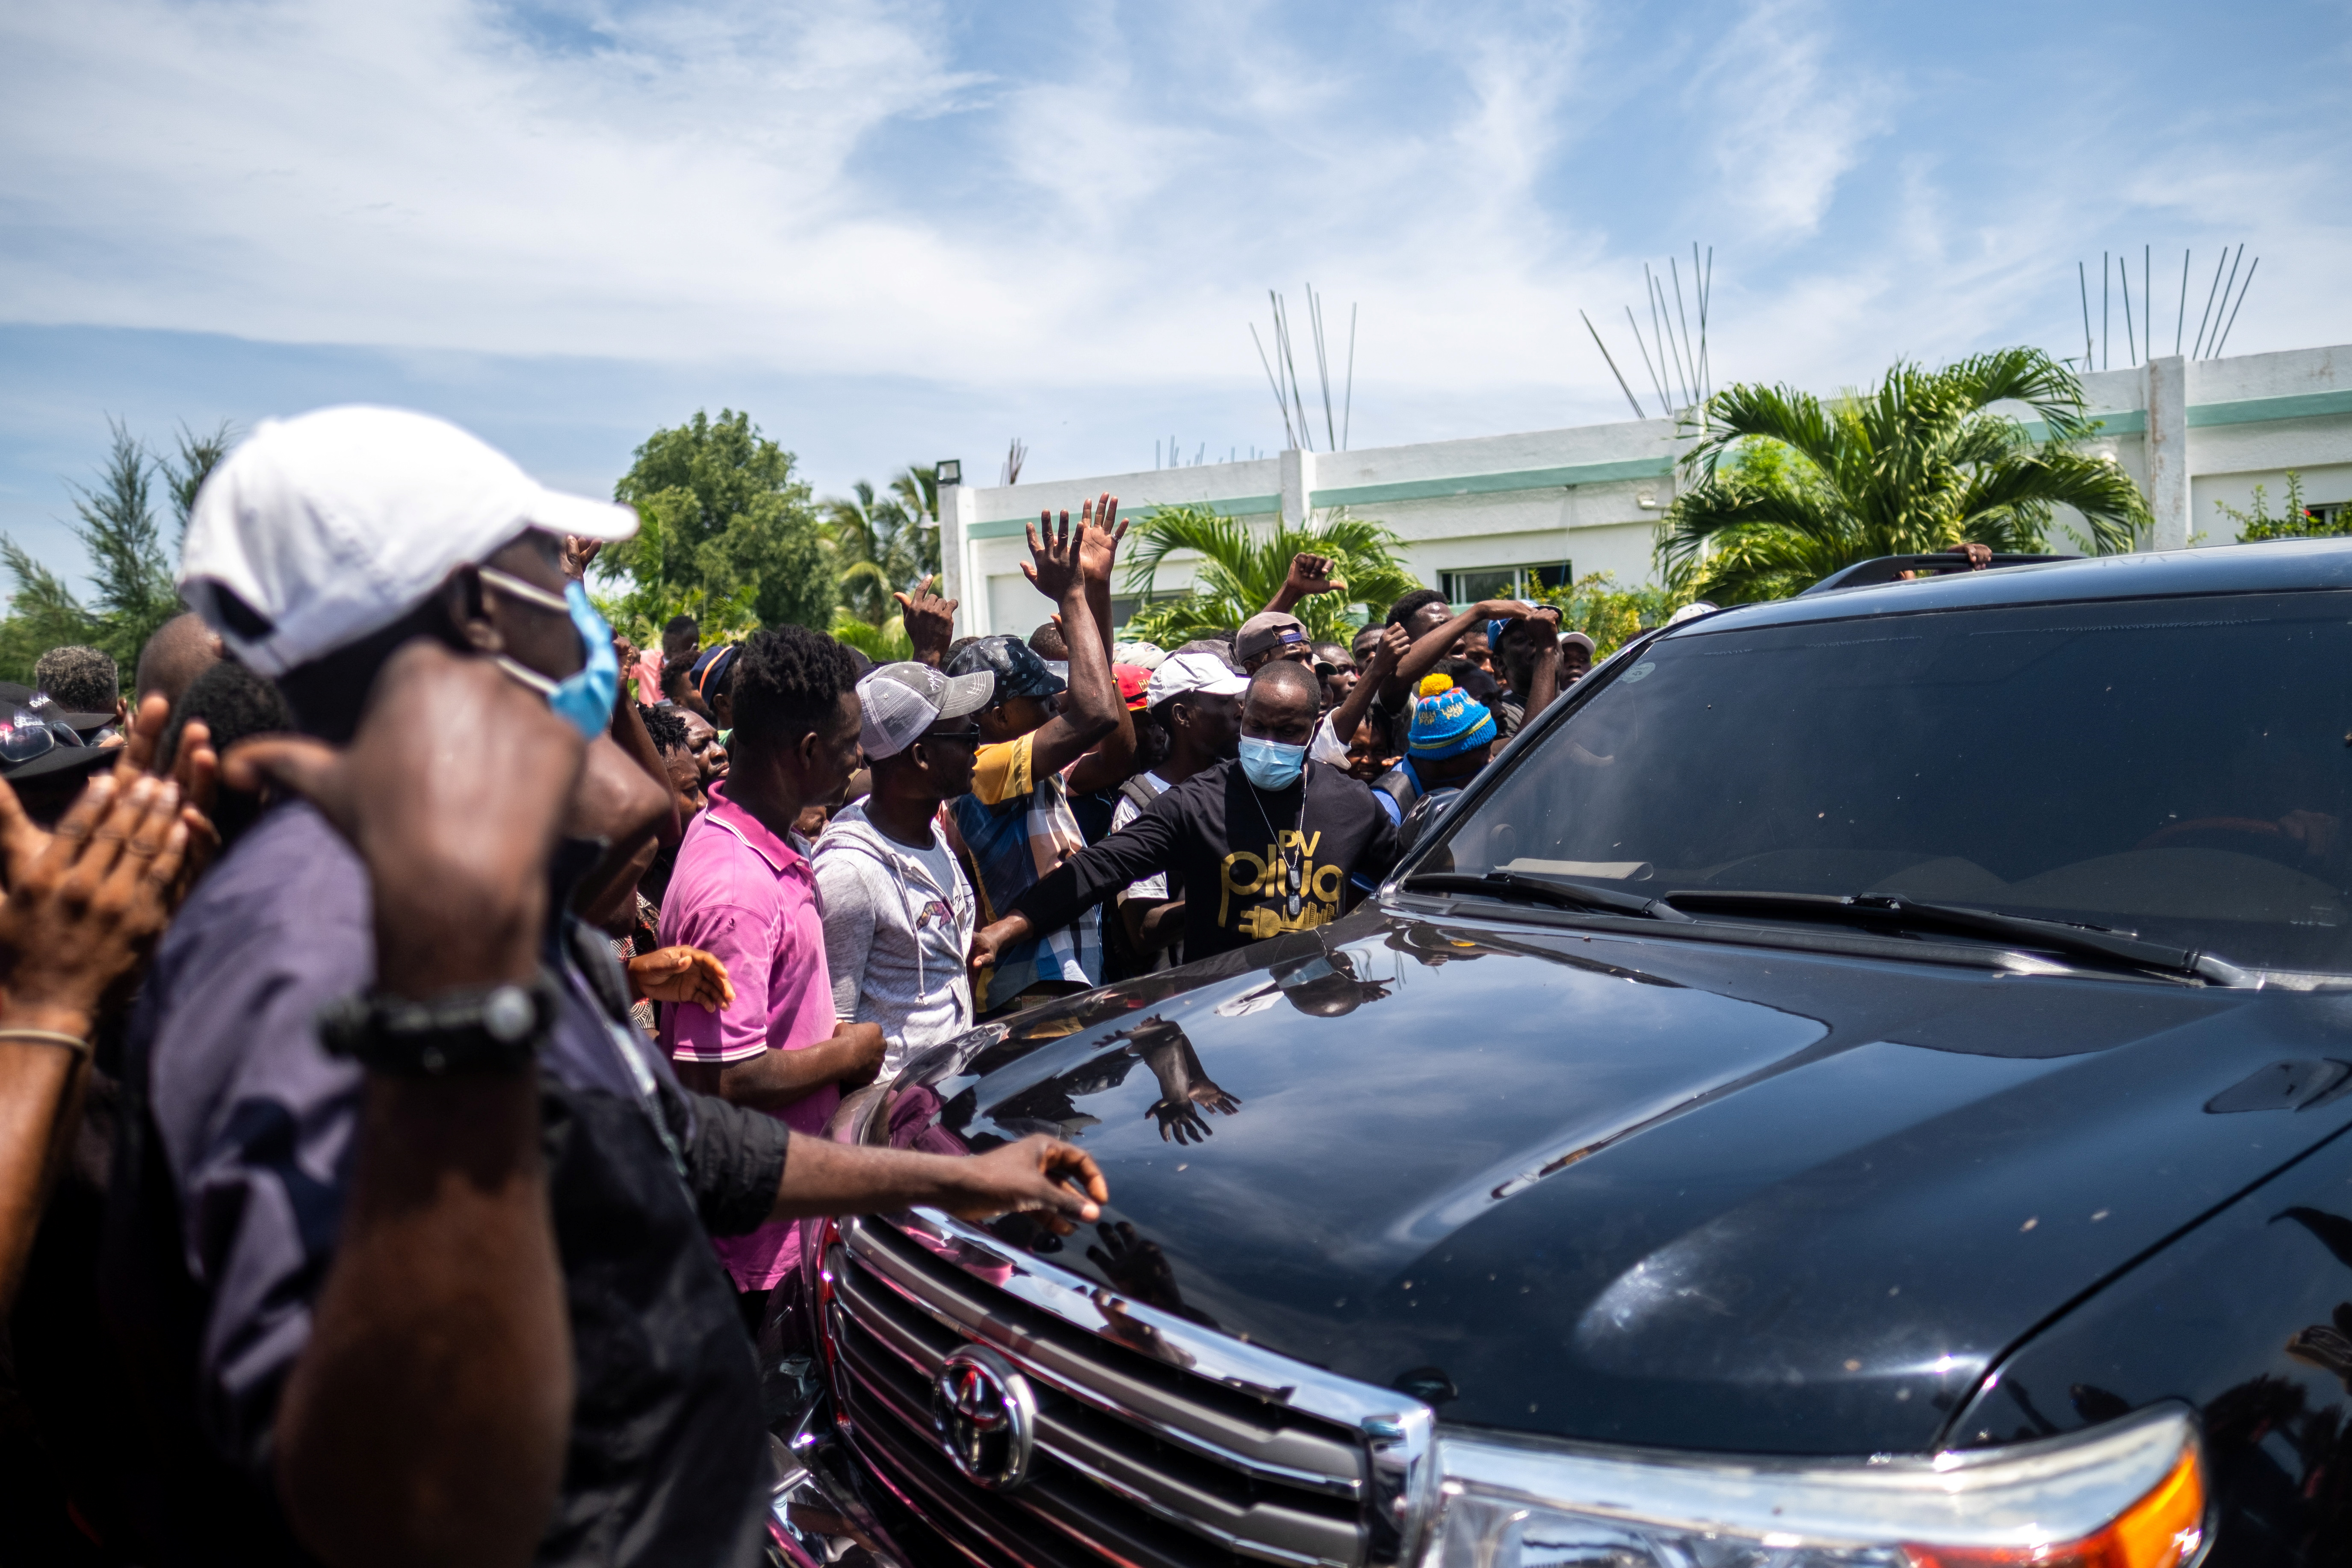 Followers of former Haitian President Michel Martelly follow his vehicle after his visit to the OFATMA hospital in Les Cayes, Haiti August 20, 2021. REUTERS/Ricardo Arduengo